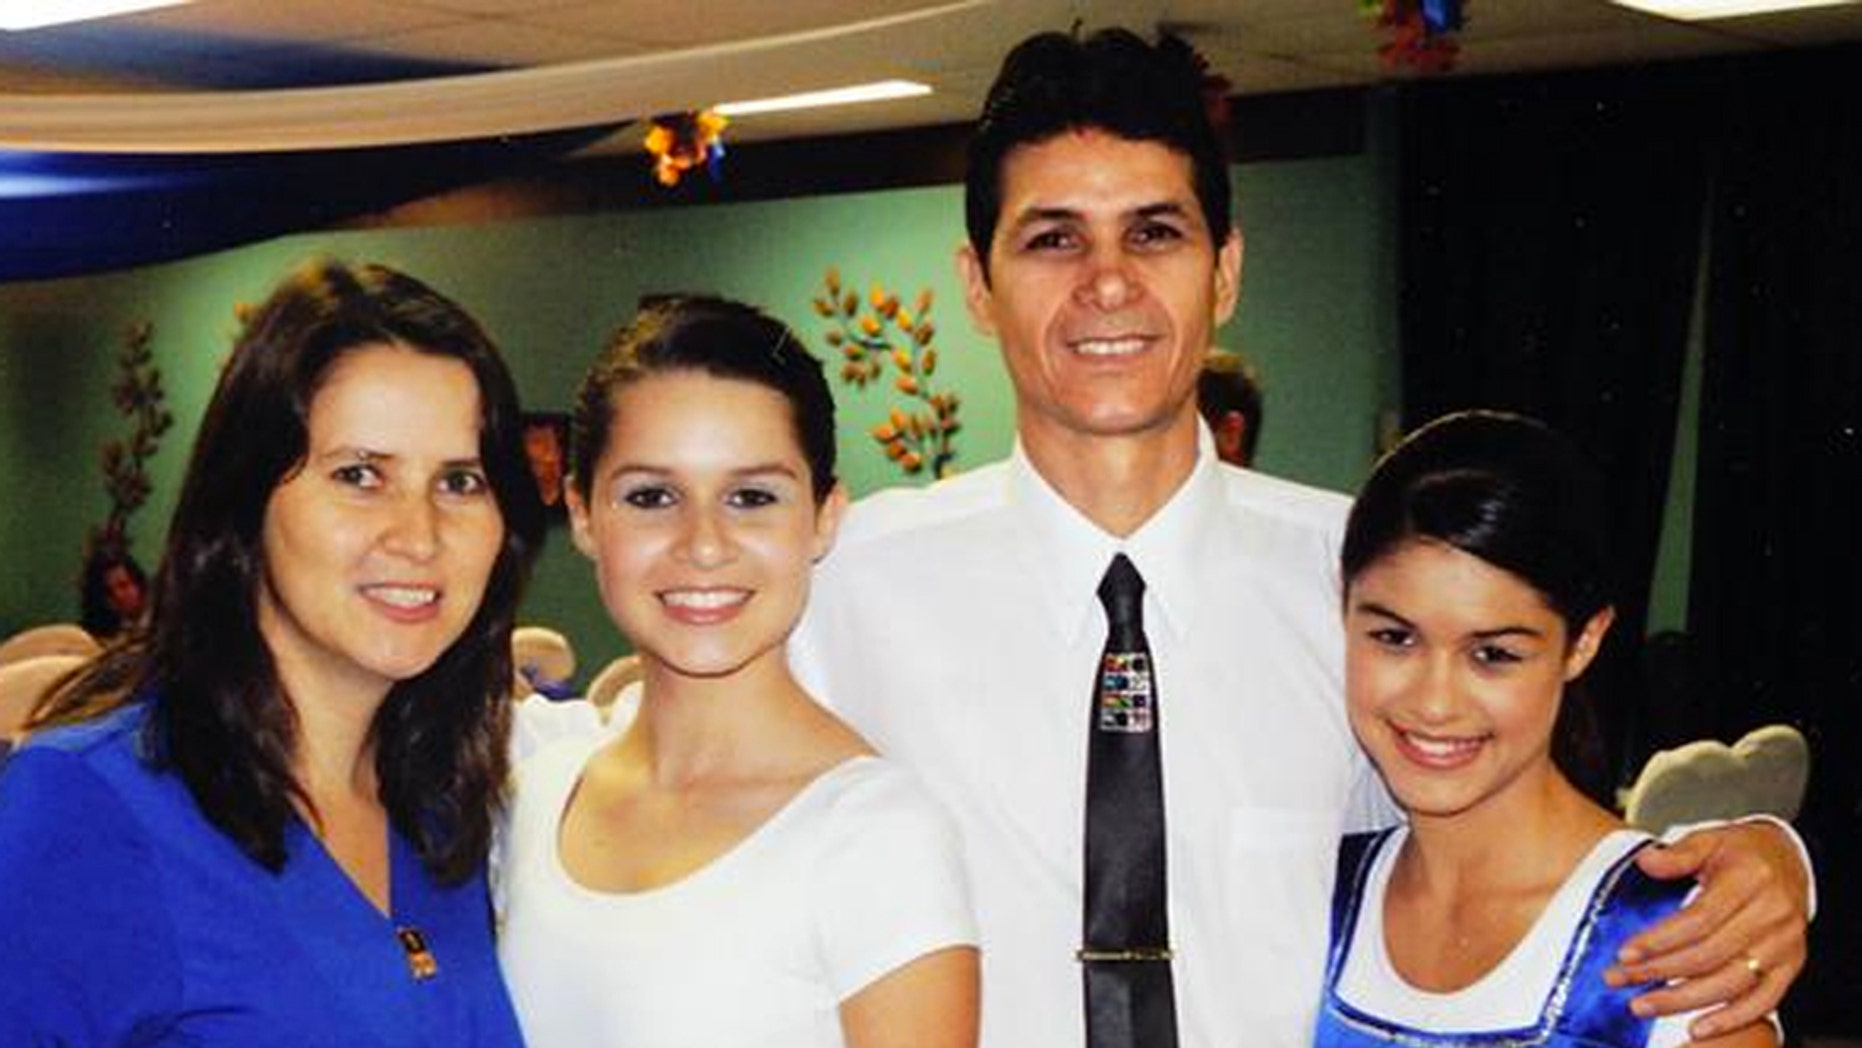 The Carmo family, Adriana, Leticia, 17, Jose Jr. and Lidiane, 15, pose at the church in Marietta, Ga. Florida Highway Patrol spokesman Lt. Patrick Riordan confirmed Jose Carmo Jr., Adriana Carmo, Leticia Carmo and Edson Carmo, not shown in picture, as victims in the Sunday crash in Florida that killed 10 people.